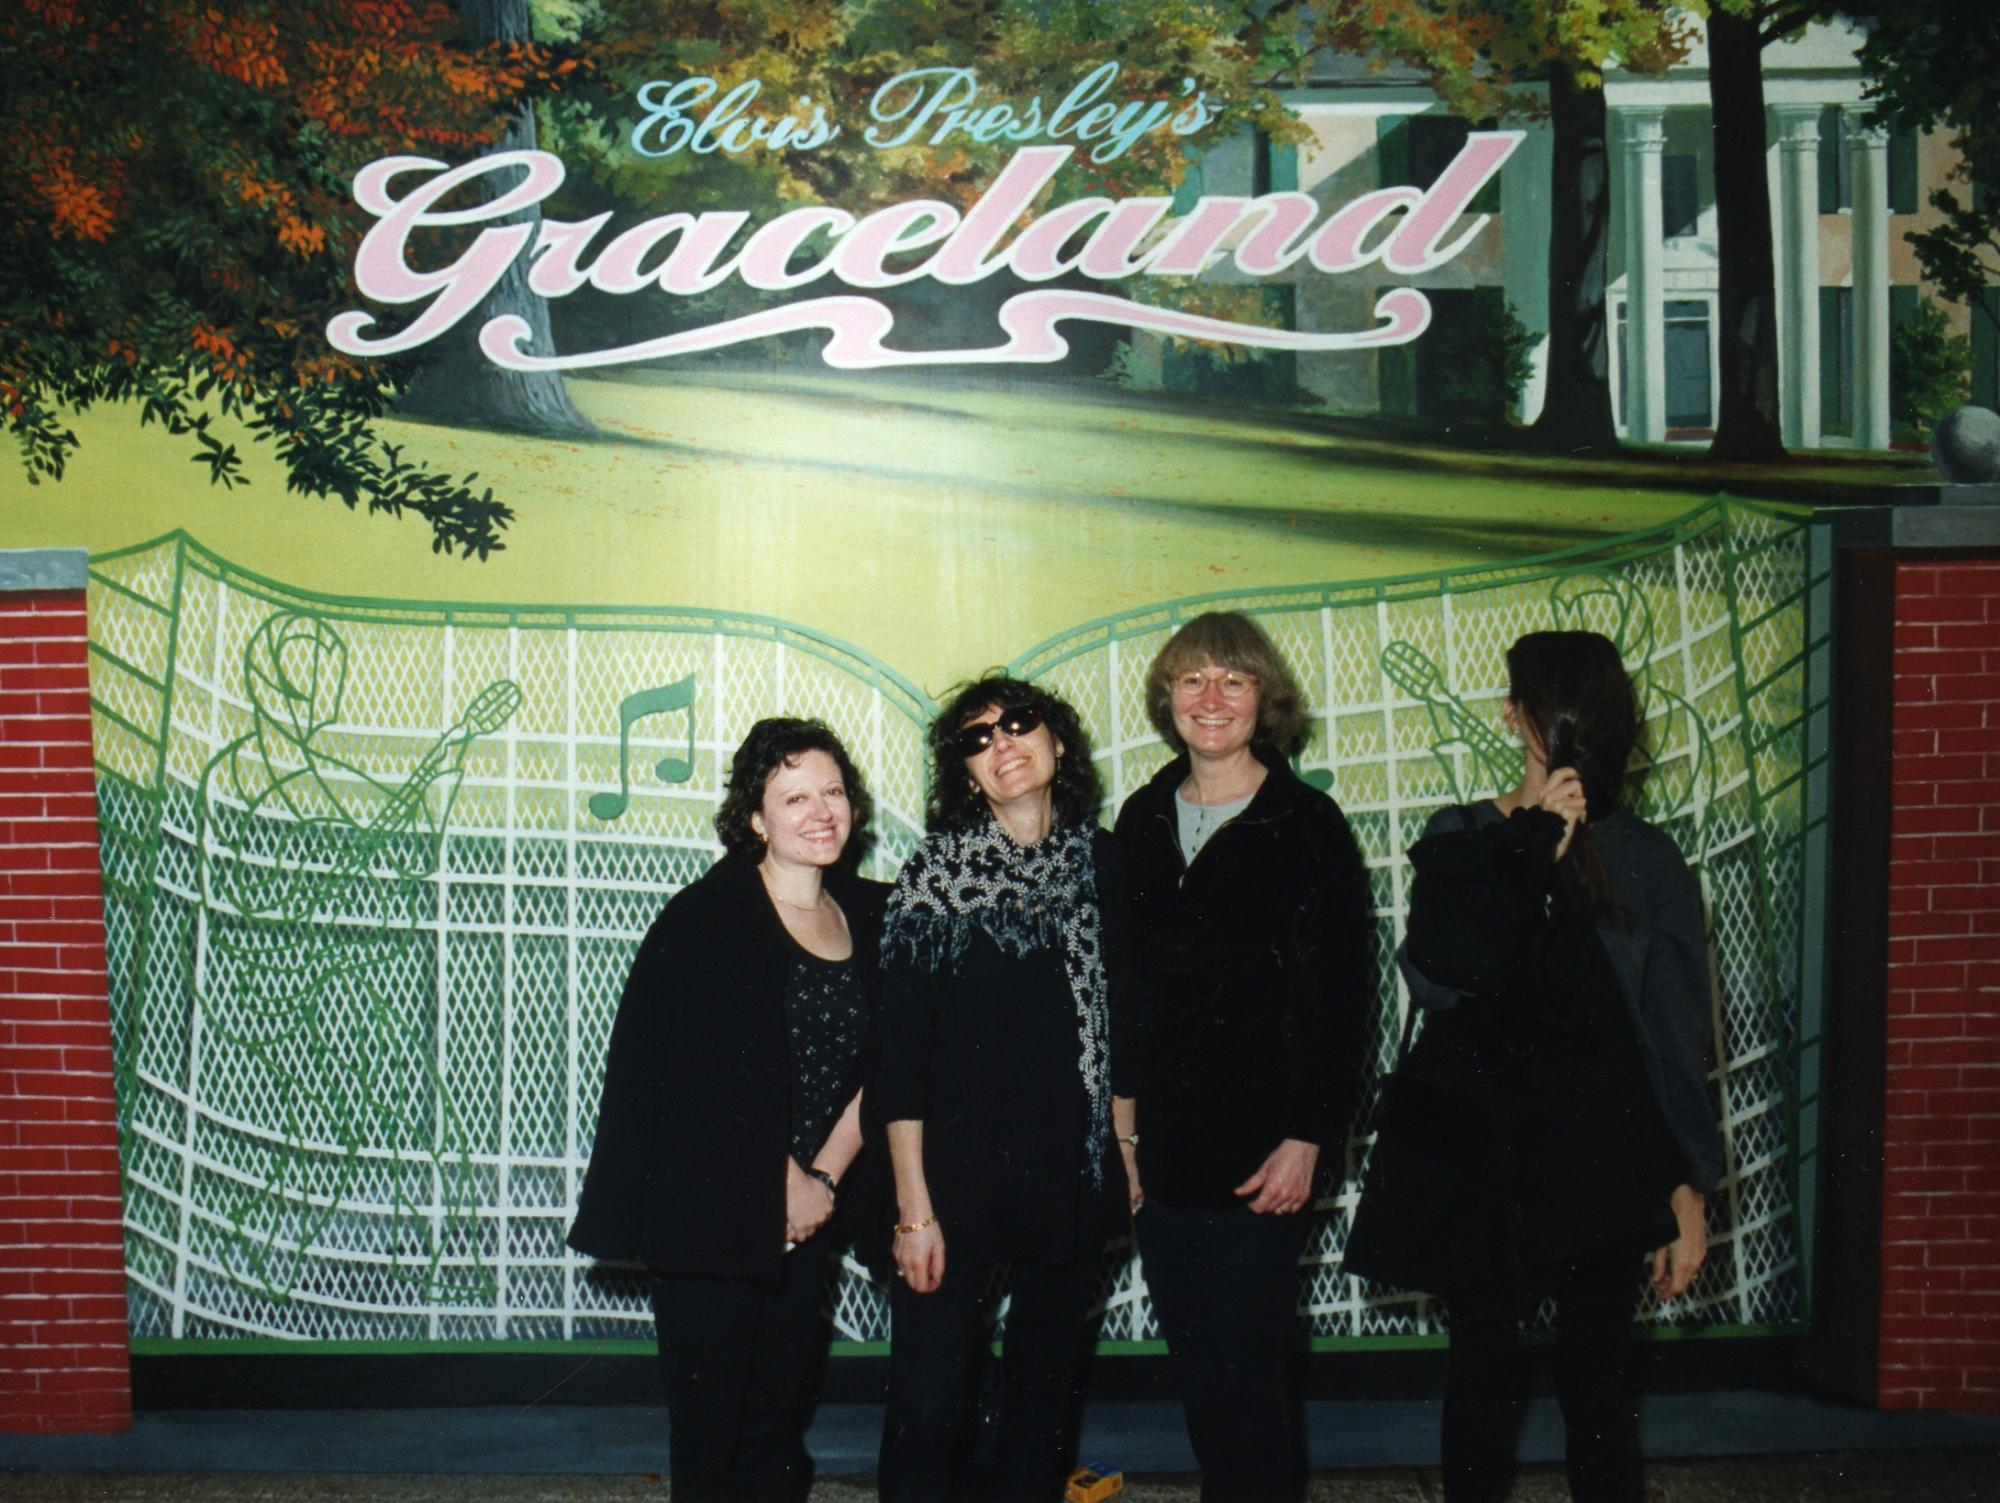 A memorable visit to Graceland in Memphis, Tenn. c. 1998